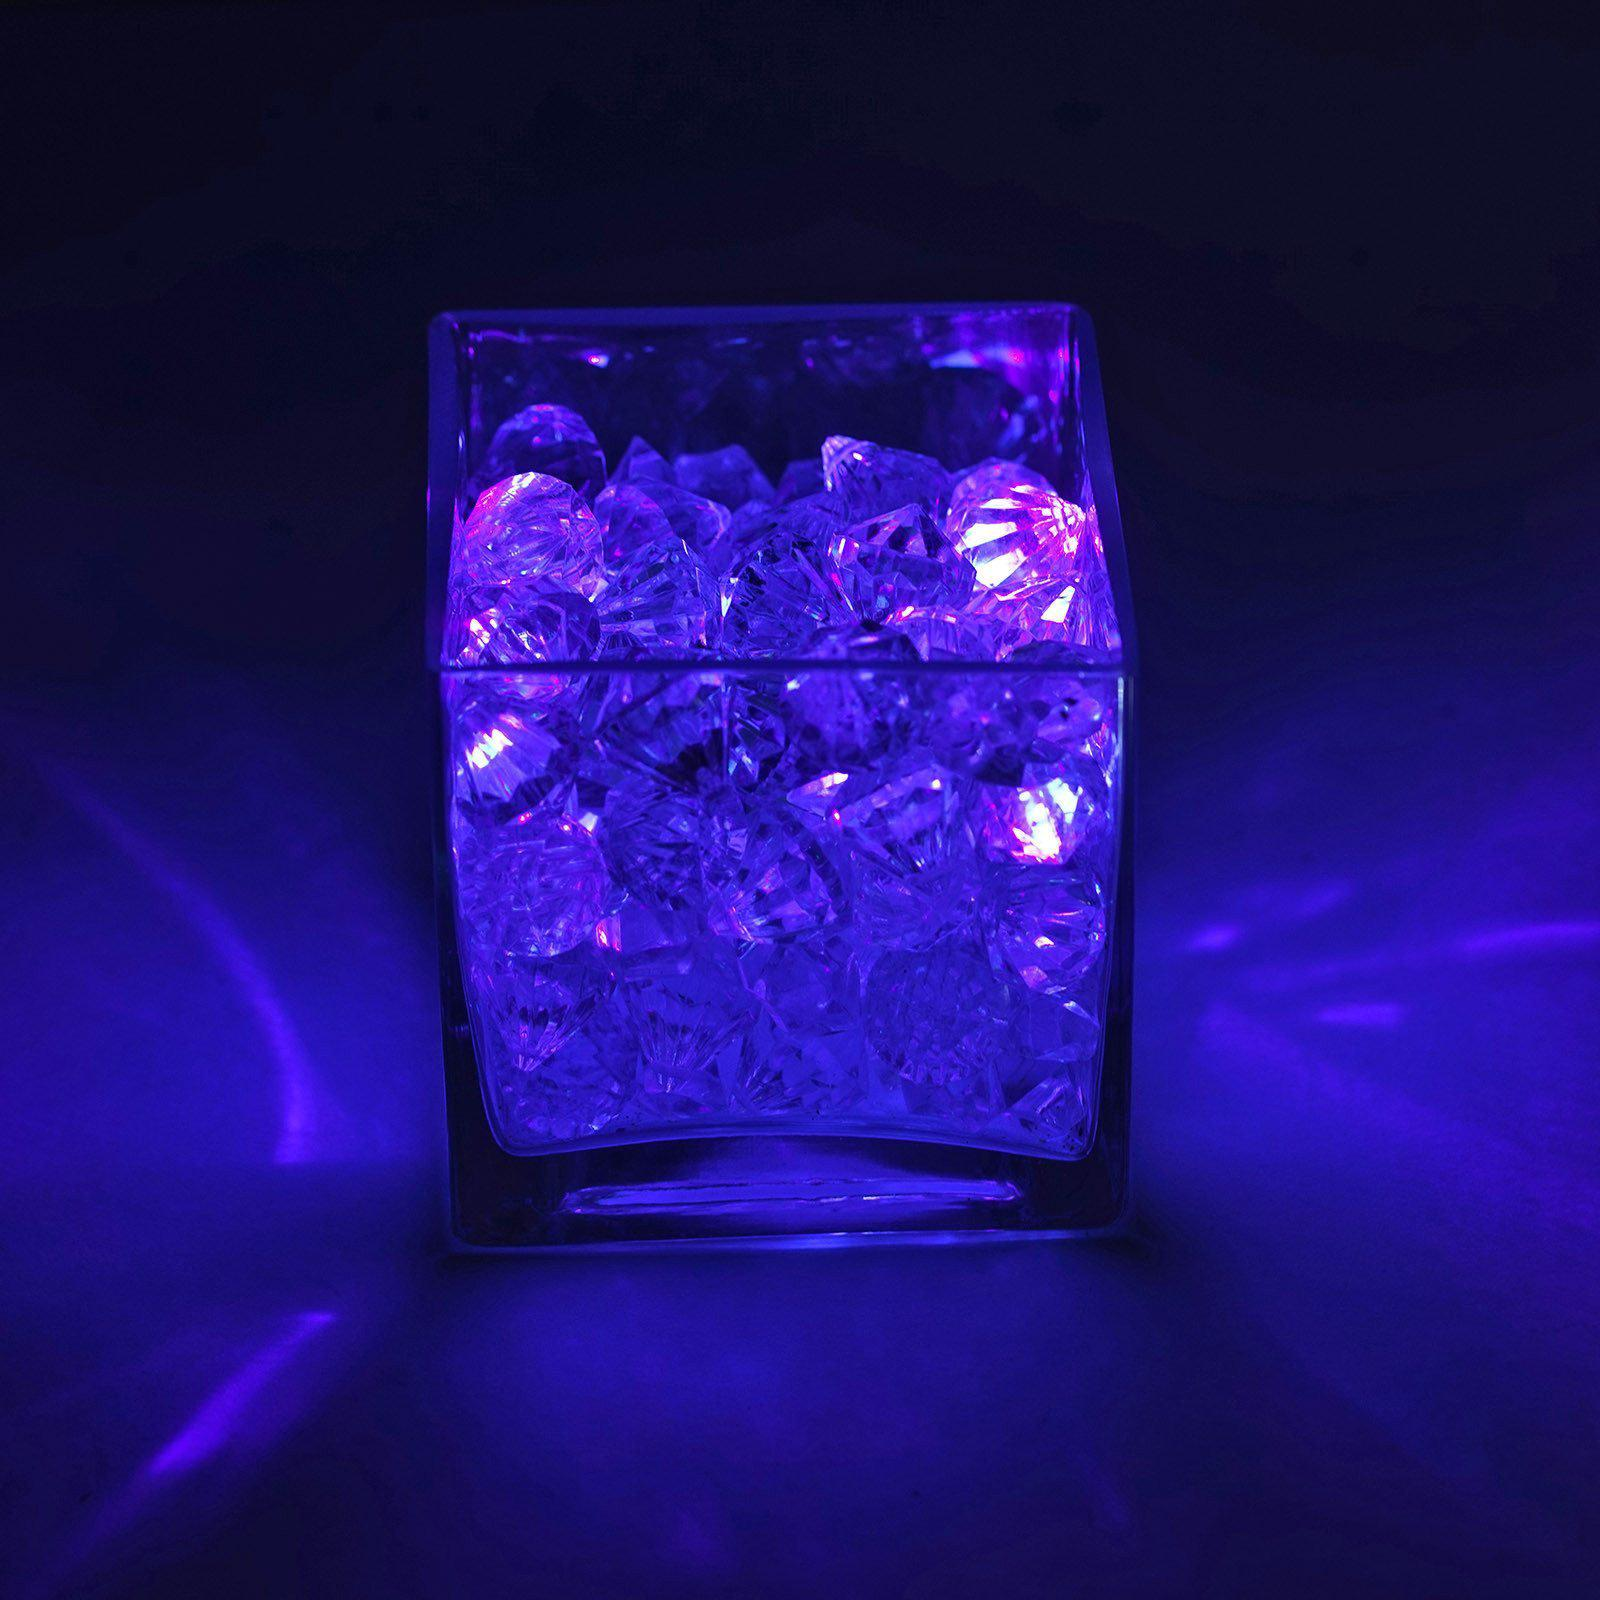 Celebrate your special day with unique Submersible LEDs and decorative wedding lights offered by Tablecloths Factory.com. Use our Light The Way Floralyte Vase L